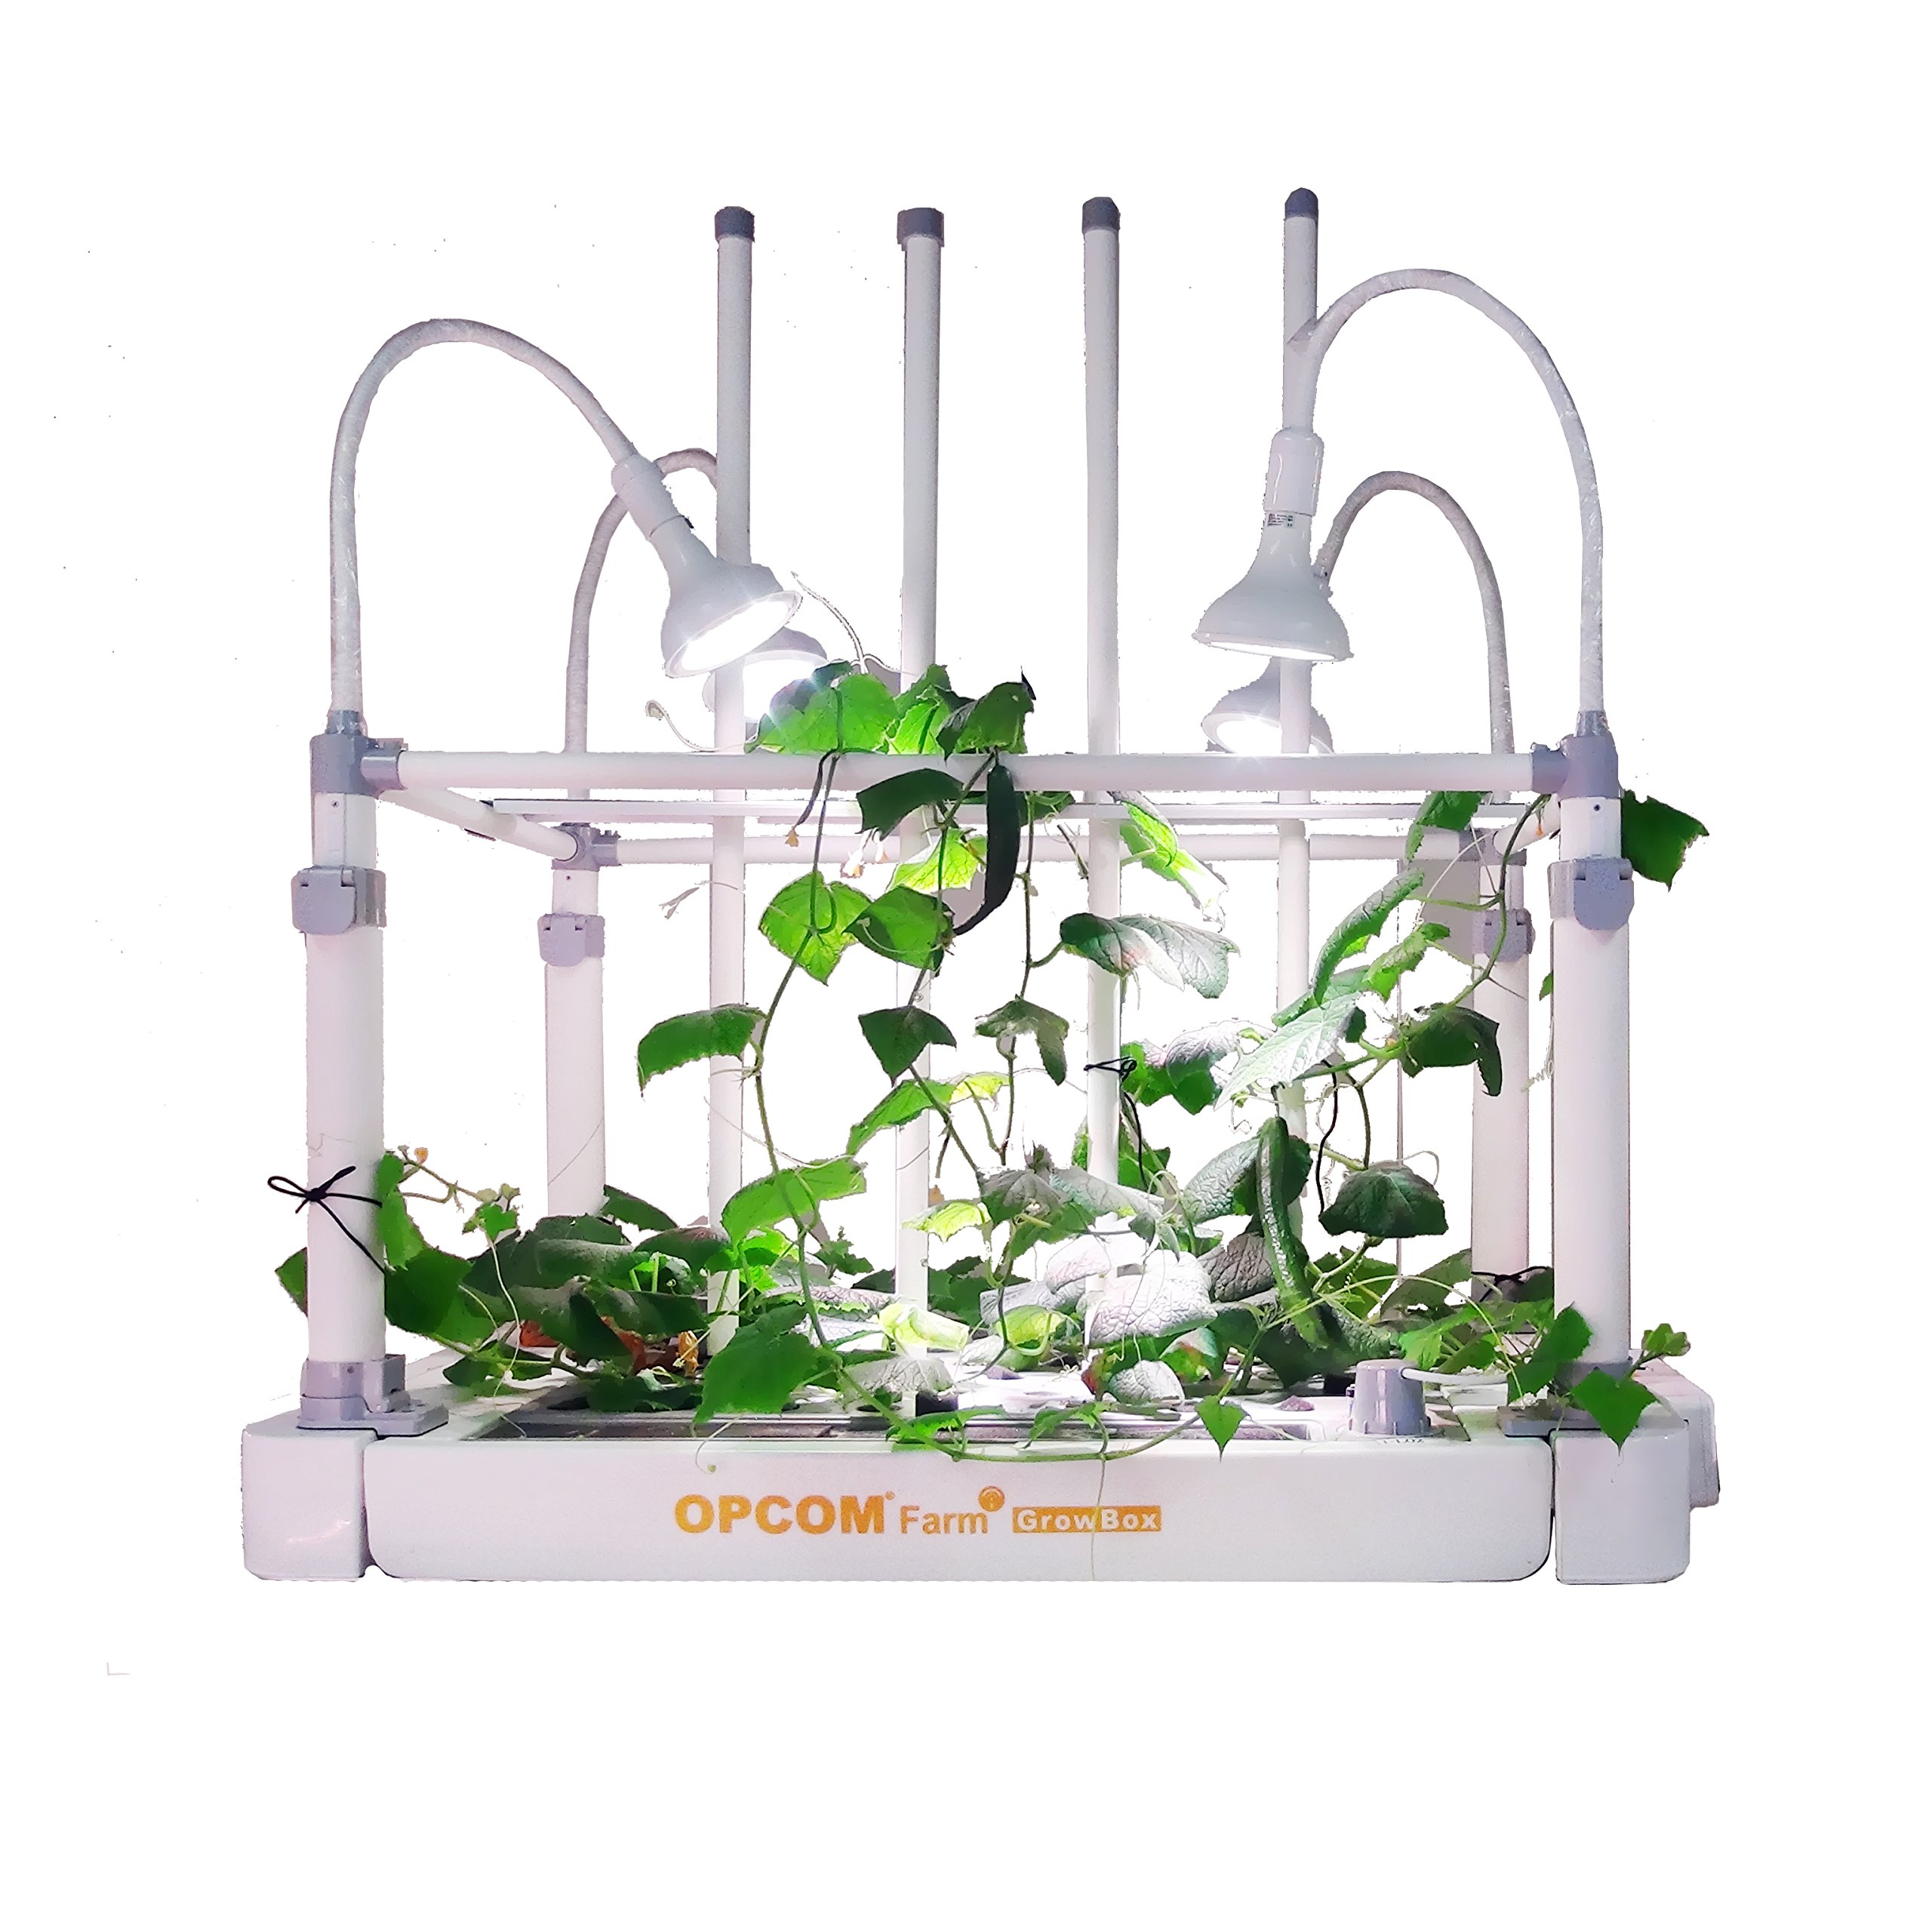 OPCOM® Farm GrowBox (High Capacity, Hydroponics, indoor garden & farm, greenhouse,Growing herb, vegetable, flower, fruit)